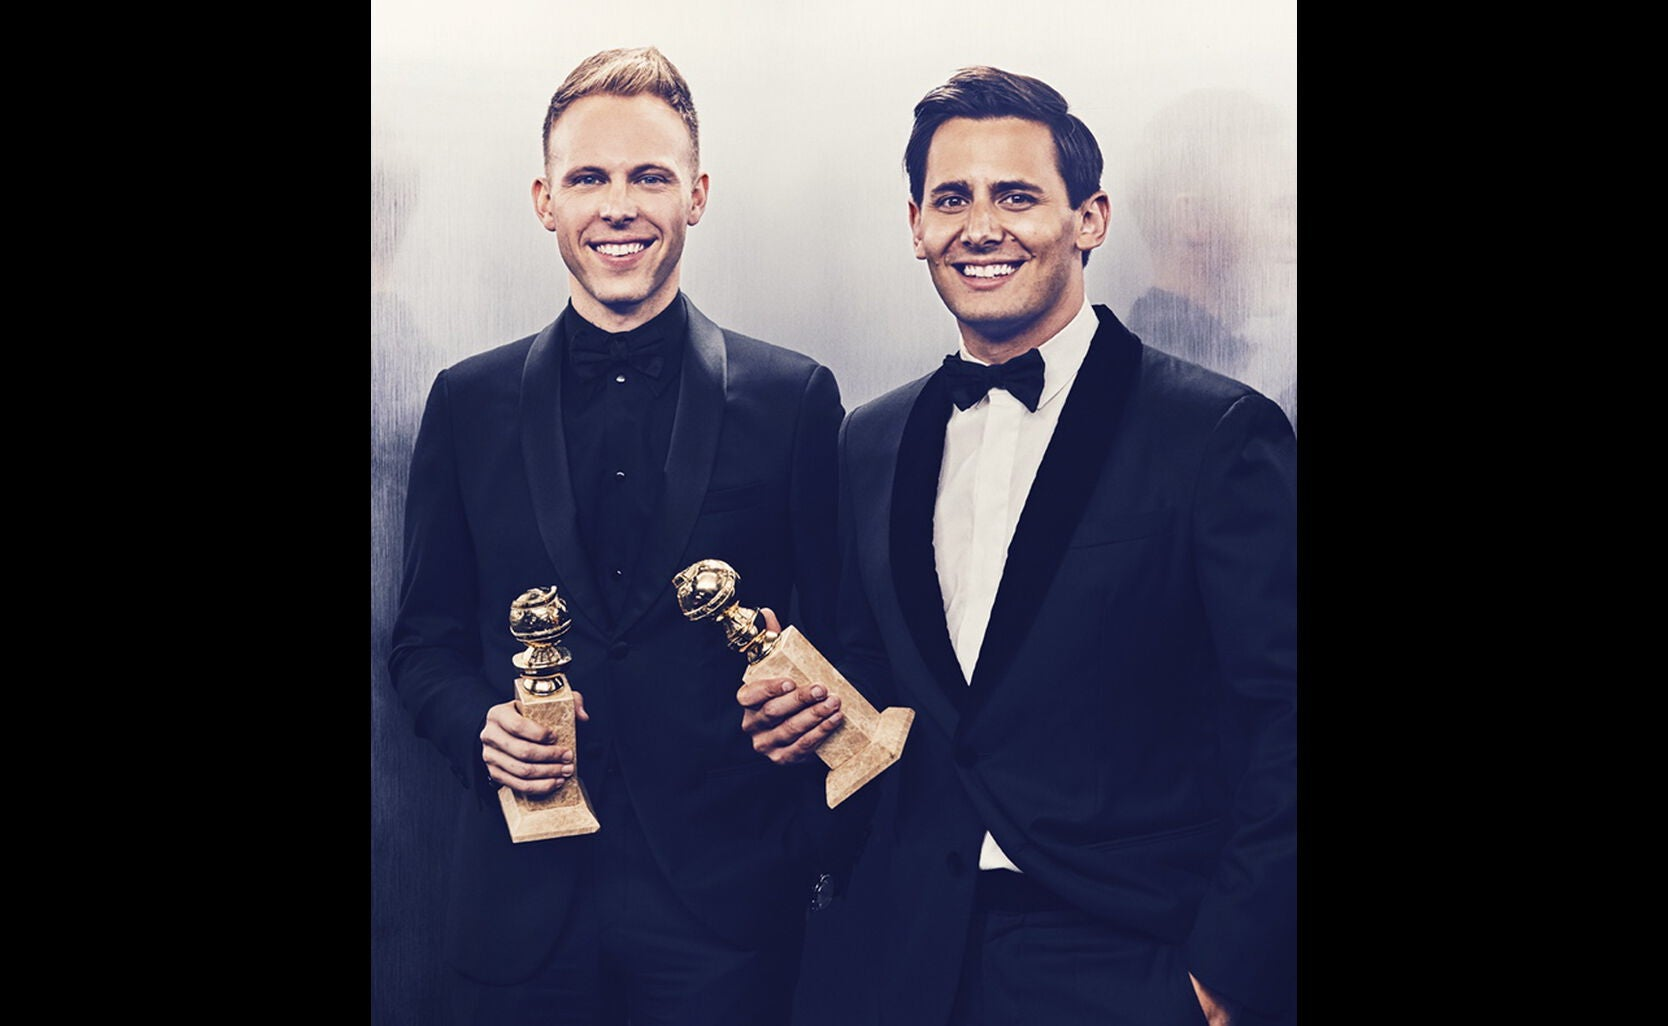 Benj Pasek and Justi  Paul, composers, This is Me, Best Original Song, Motion Picture, The Greatest Showman